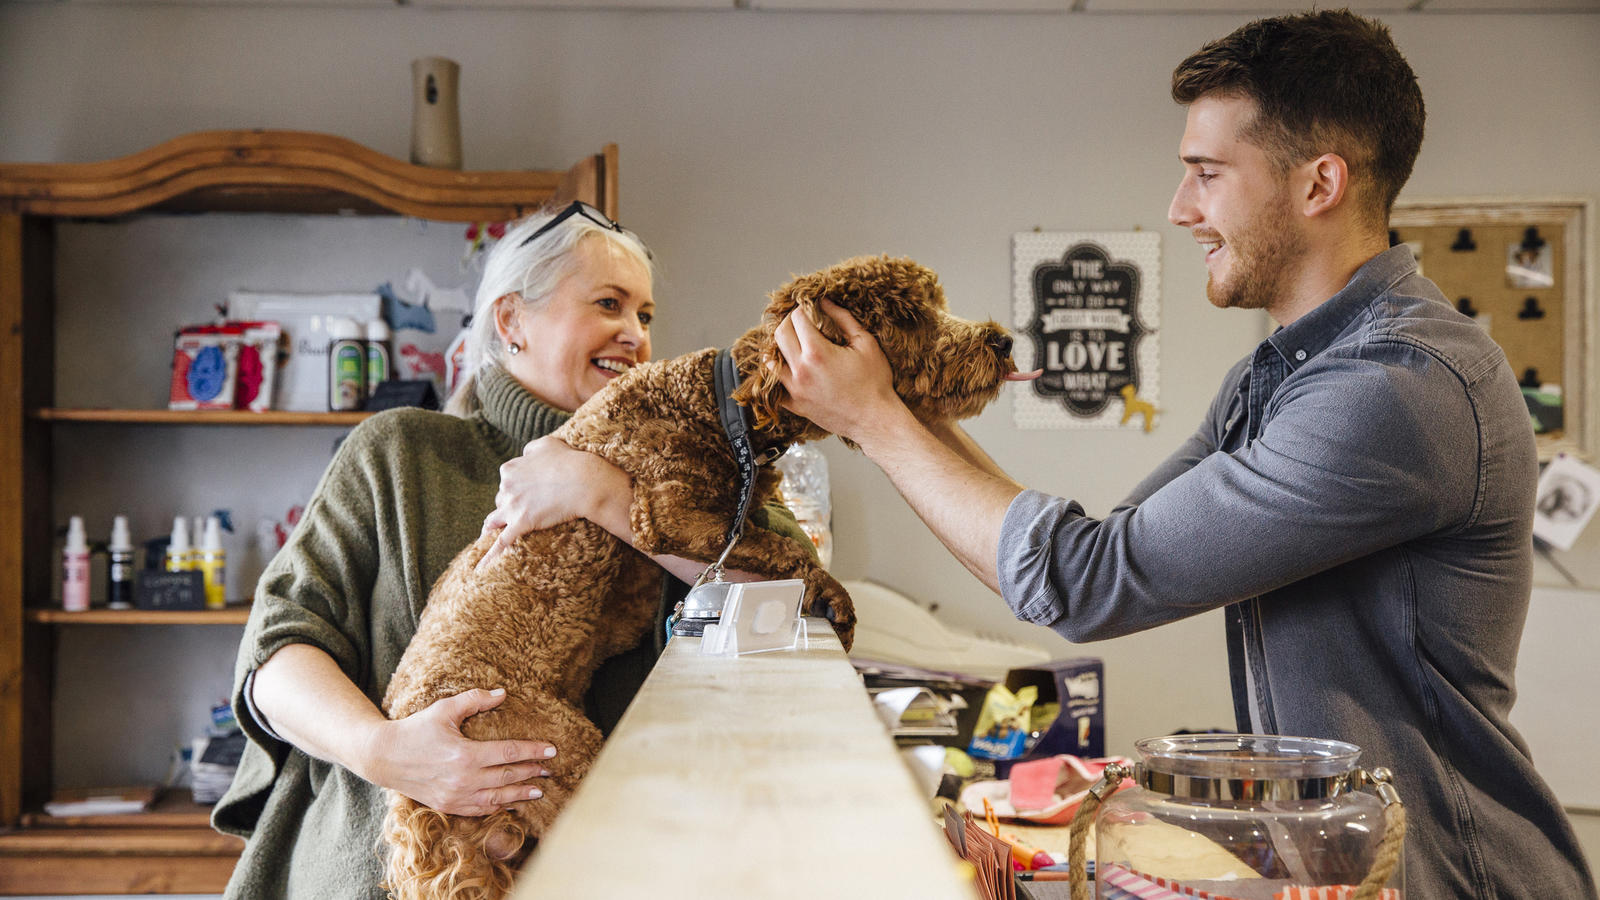 Mature woman is at the reception in the dog grooming salon with her pet cockapoo. The dog is leaning over the counter to recieve affection from the dog groomer.